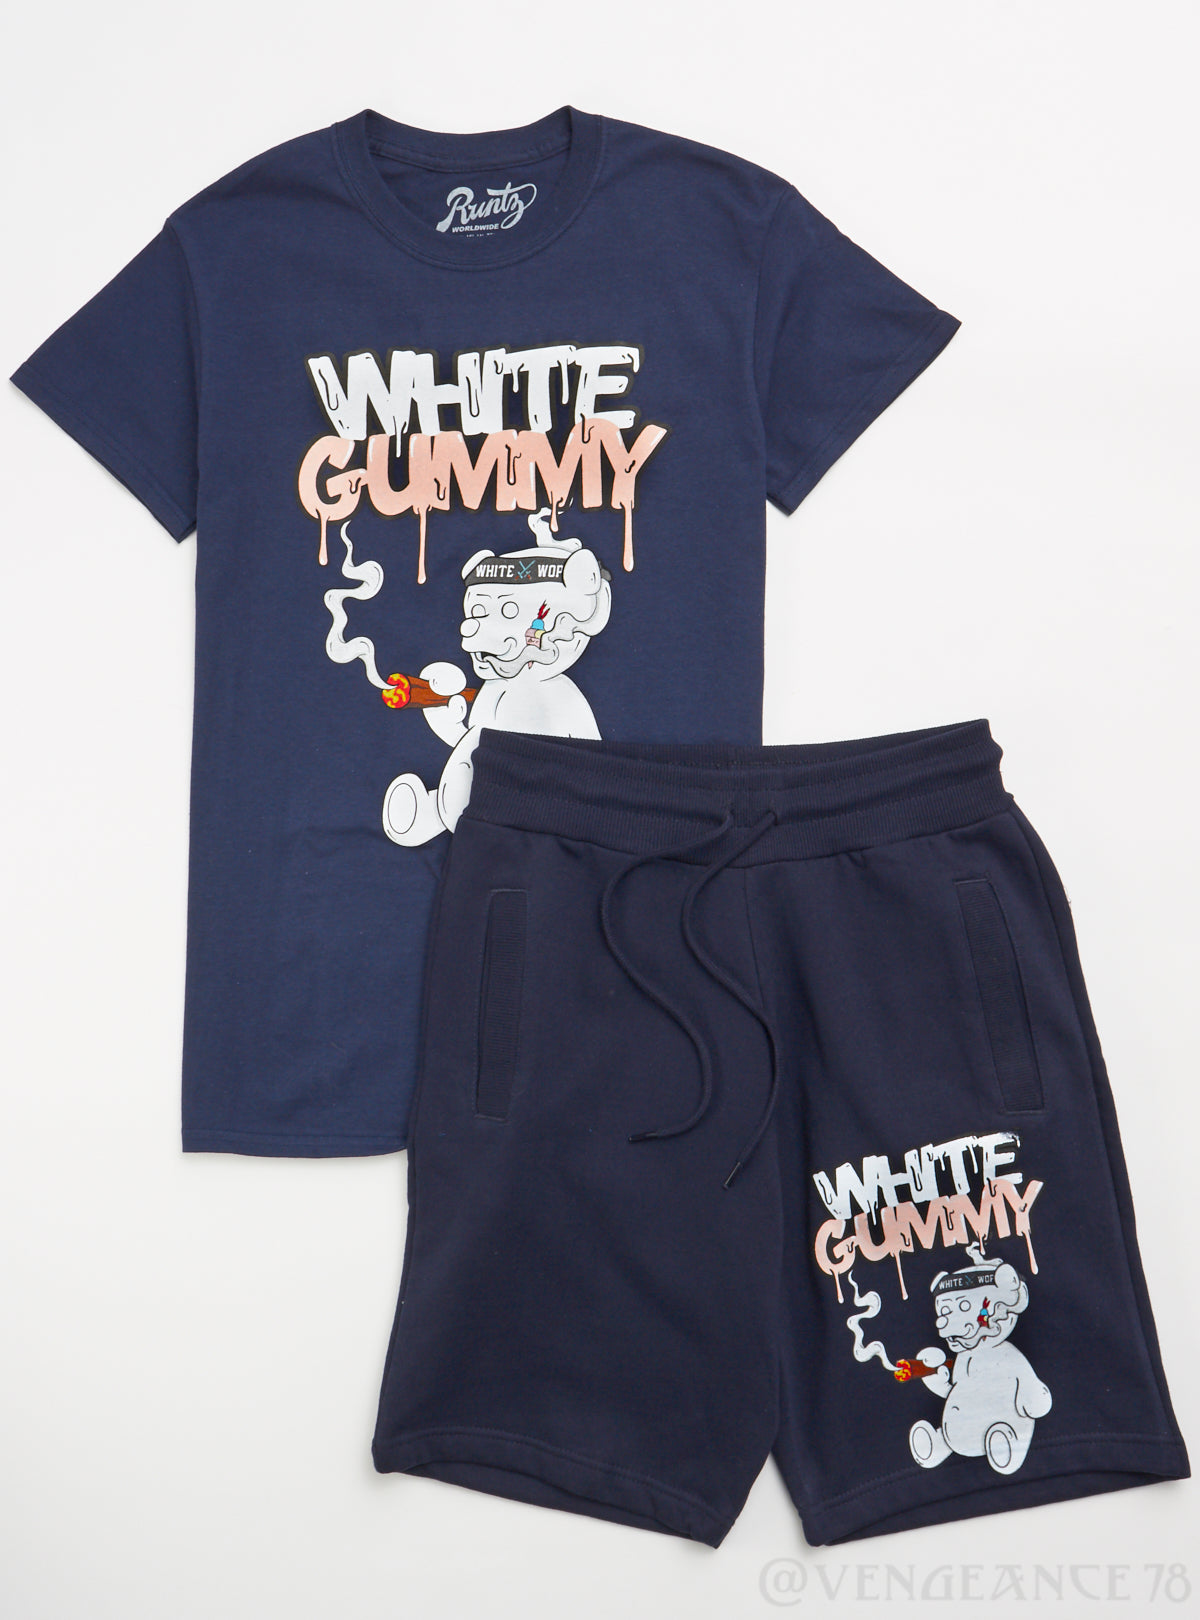 Runtz Short Set - White Gummy - Navy - 40141